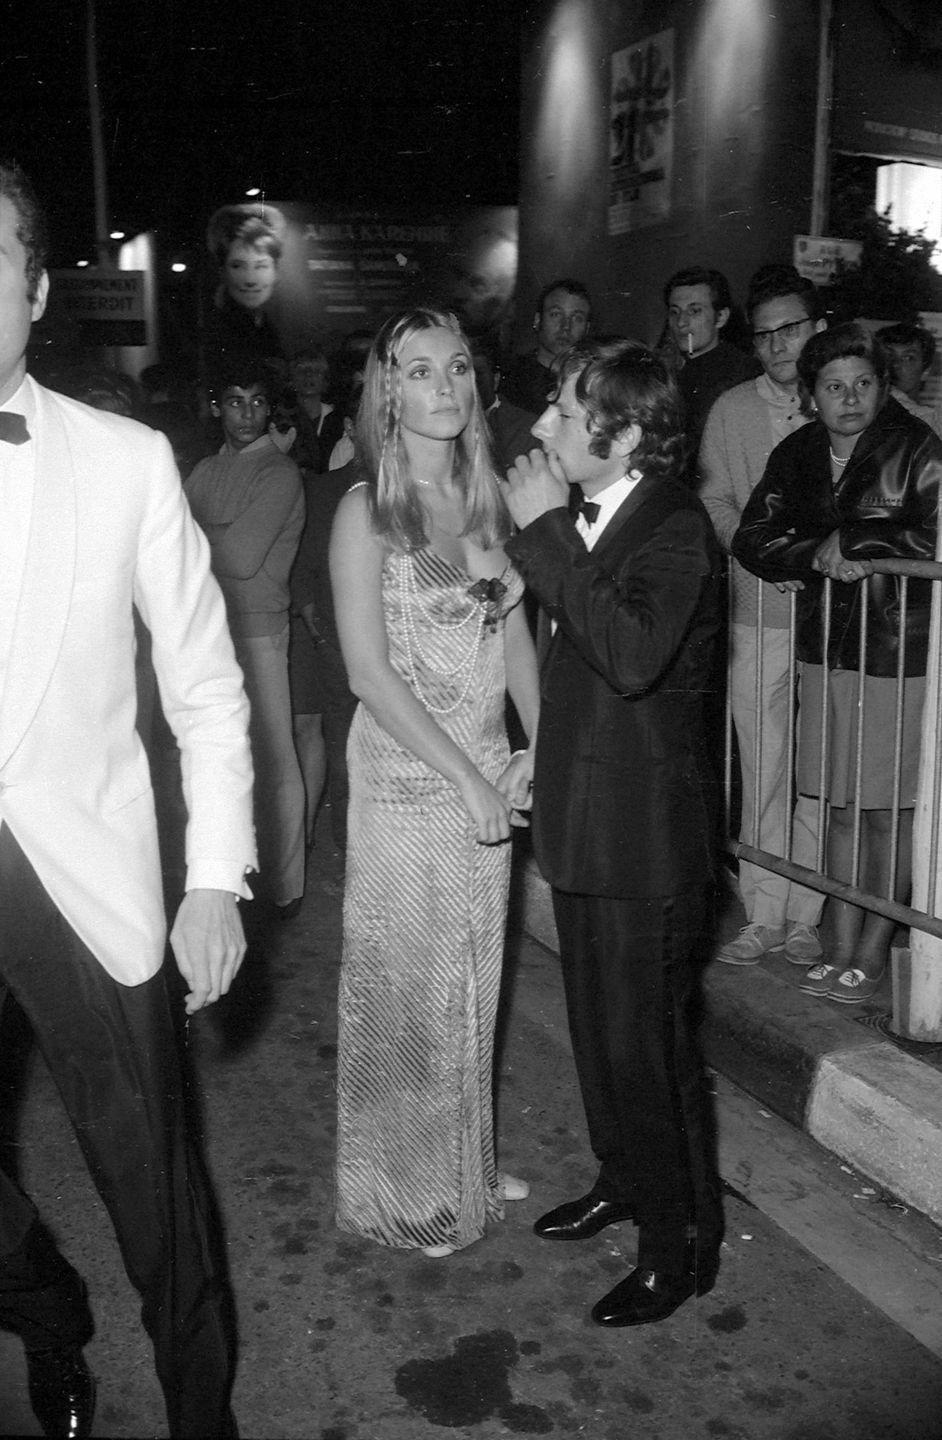 <p>Tate was often noticed for her fashion sense. Here she is at the Cannes Film Festival in 1968.</p>